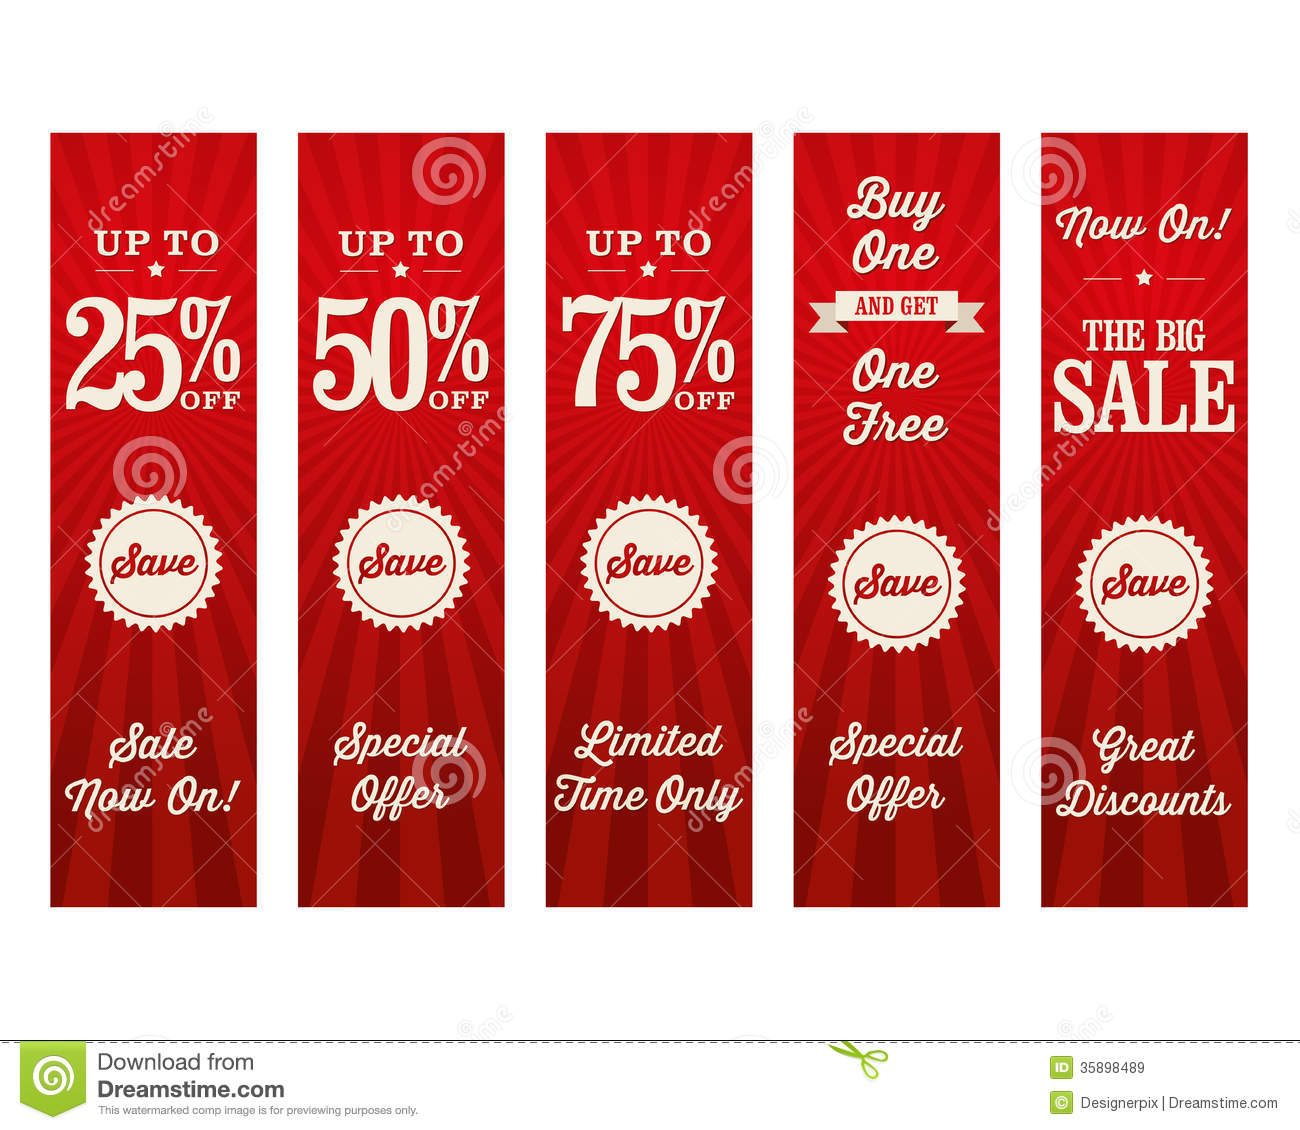 Vintage Retail Website Banners Royalty Free Stock Images - Image ...: dreamstime.com/royalty-free-stock-images-vintage-retail-website...